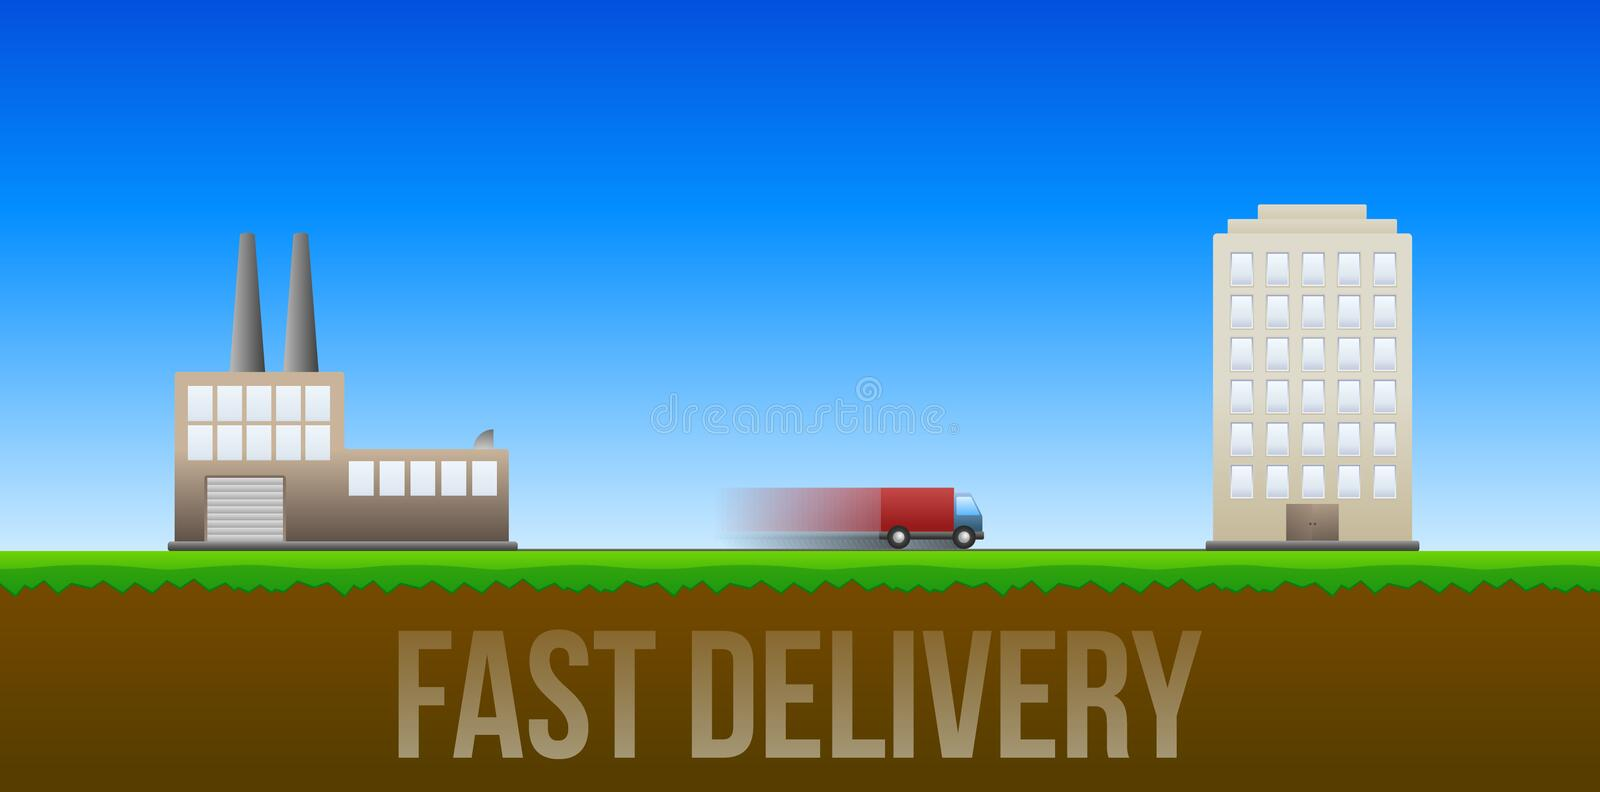 Download Fast delivery illustration stock illustration. Illustration of blue - 25898892